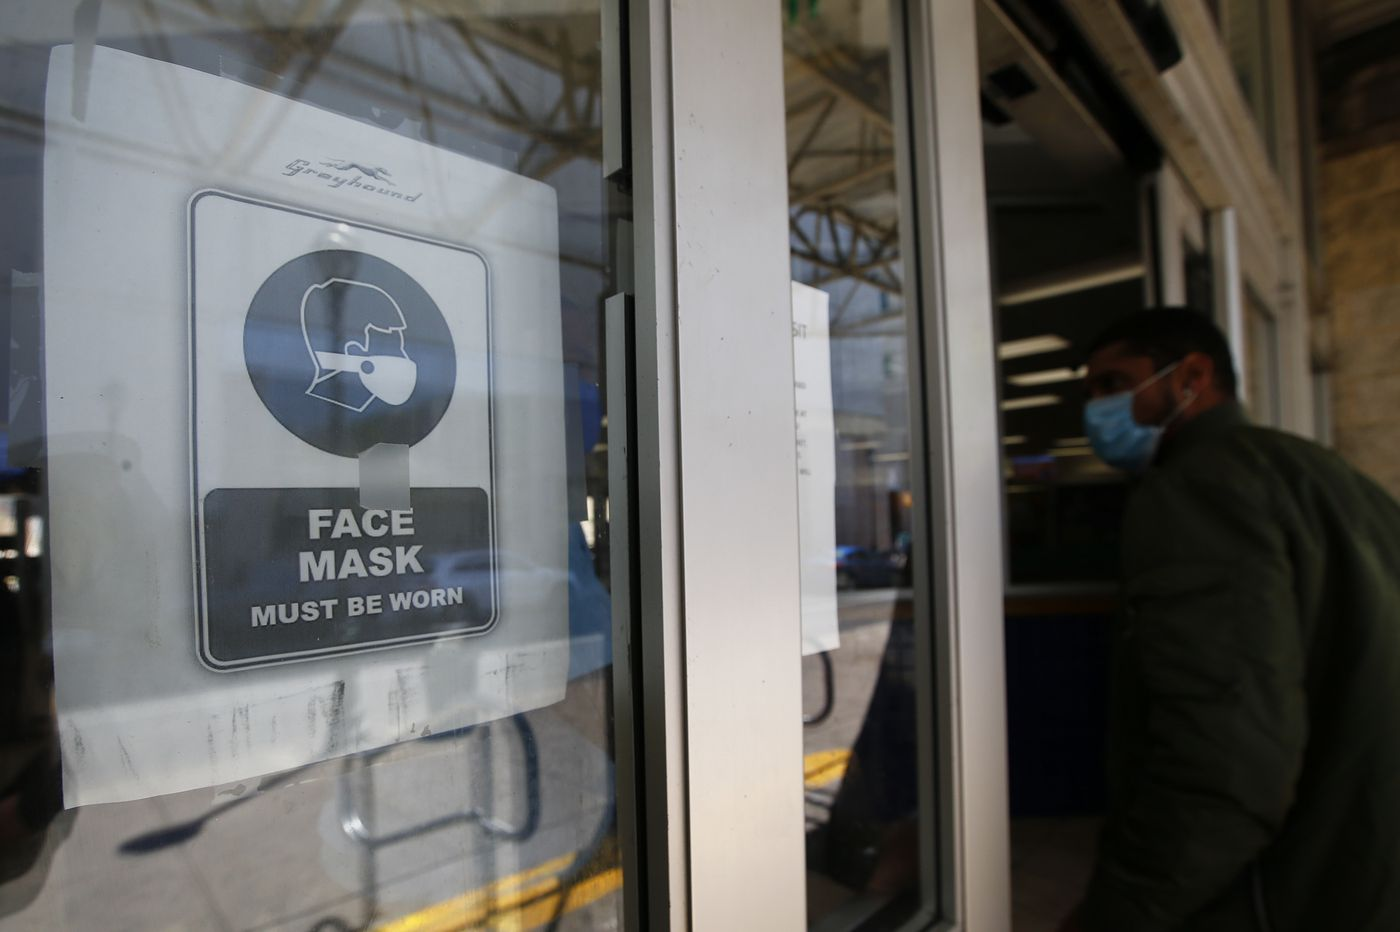 Pennsylvania makes masks mandatory in all public spaces